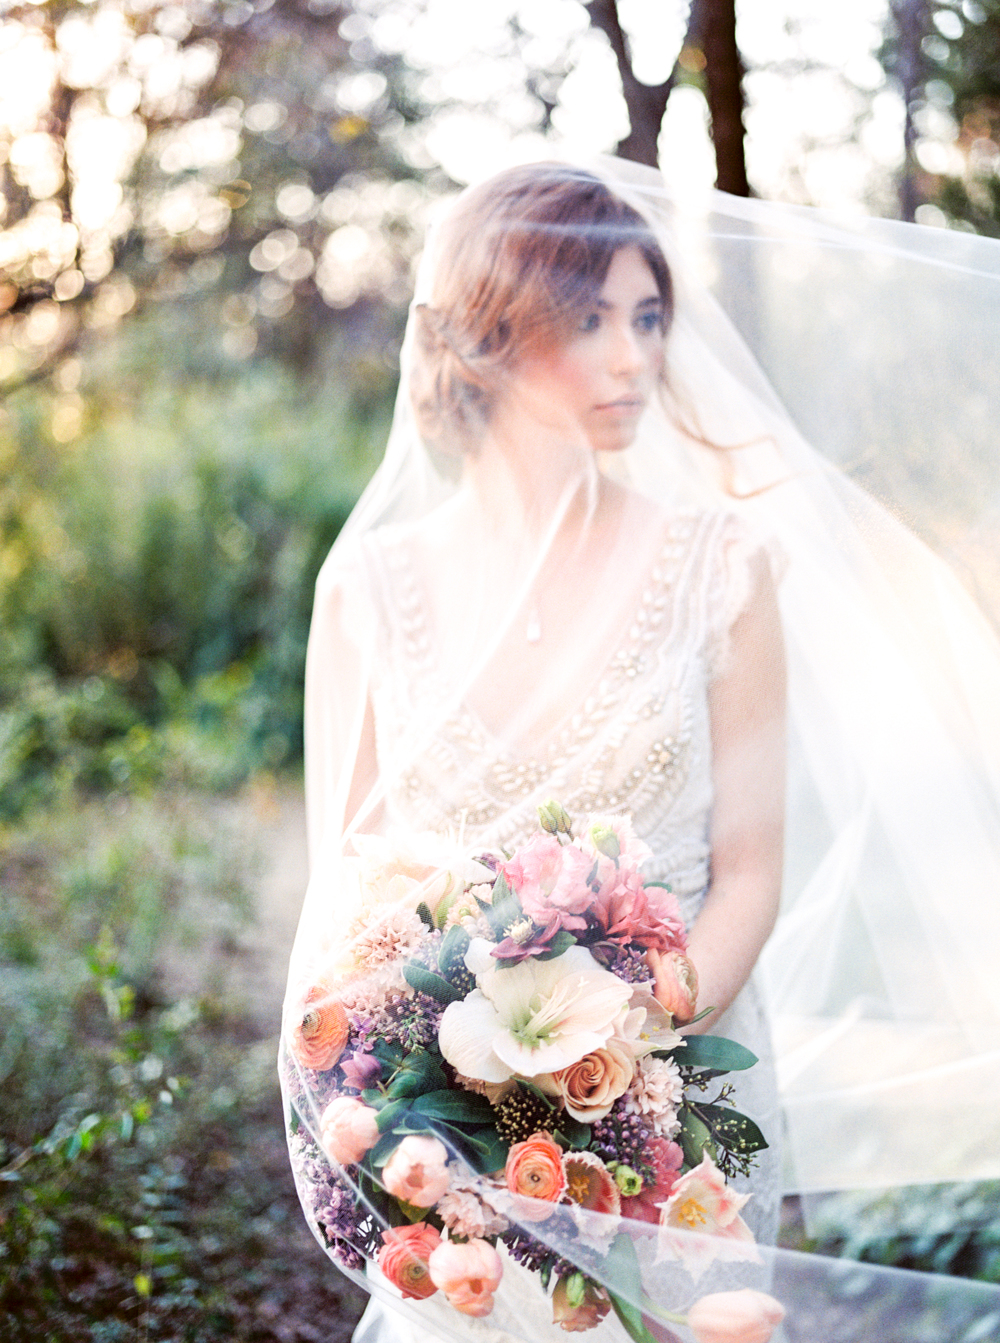 callie_manion_mamiya645af_fuji400h_dallas_texas_anna_campbell_bridal_sara_gabriel_veils_a_and_be_bridal_shop_shapiro_diamonds_allison_pontheir_dragonfly_agency_wondrous_whimsy_jar_cakery_meggie_francisco_moss_floral_quynh_nguyen_sp3000_photovisionprints.jpg